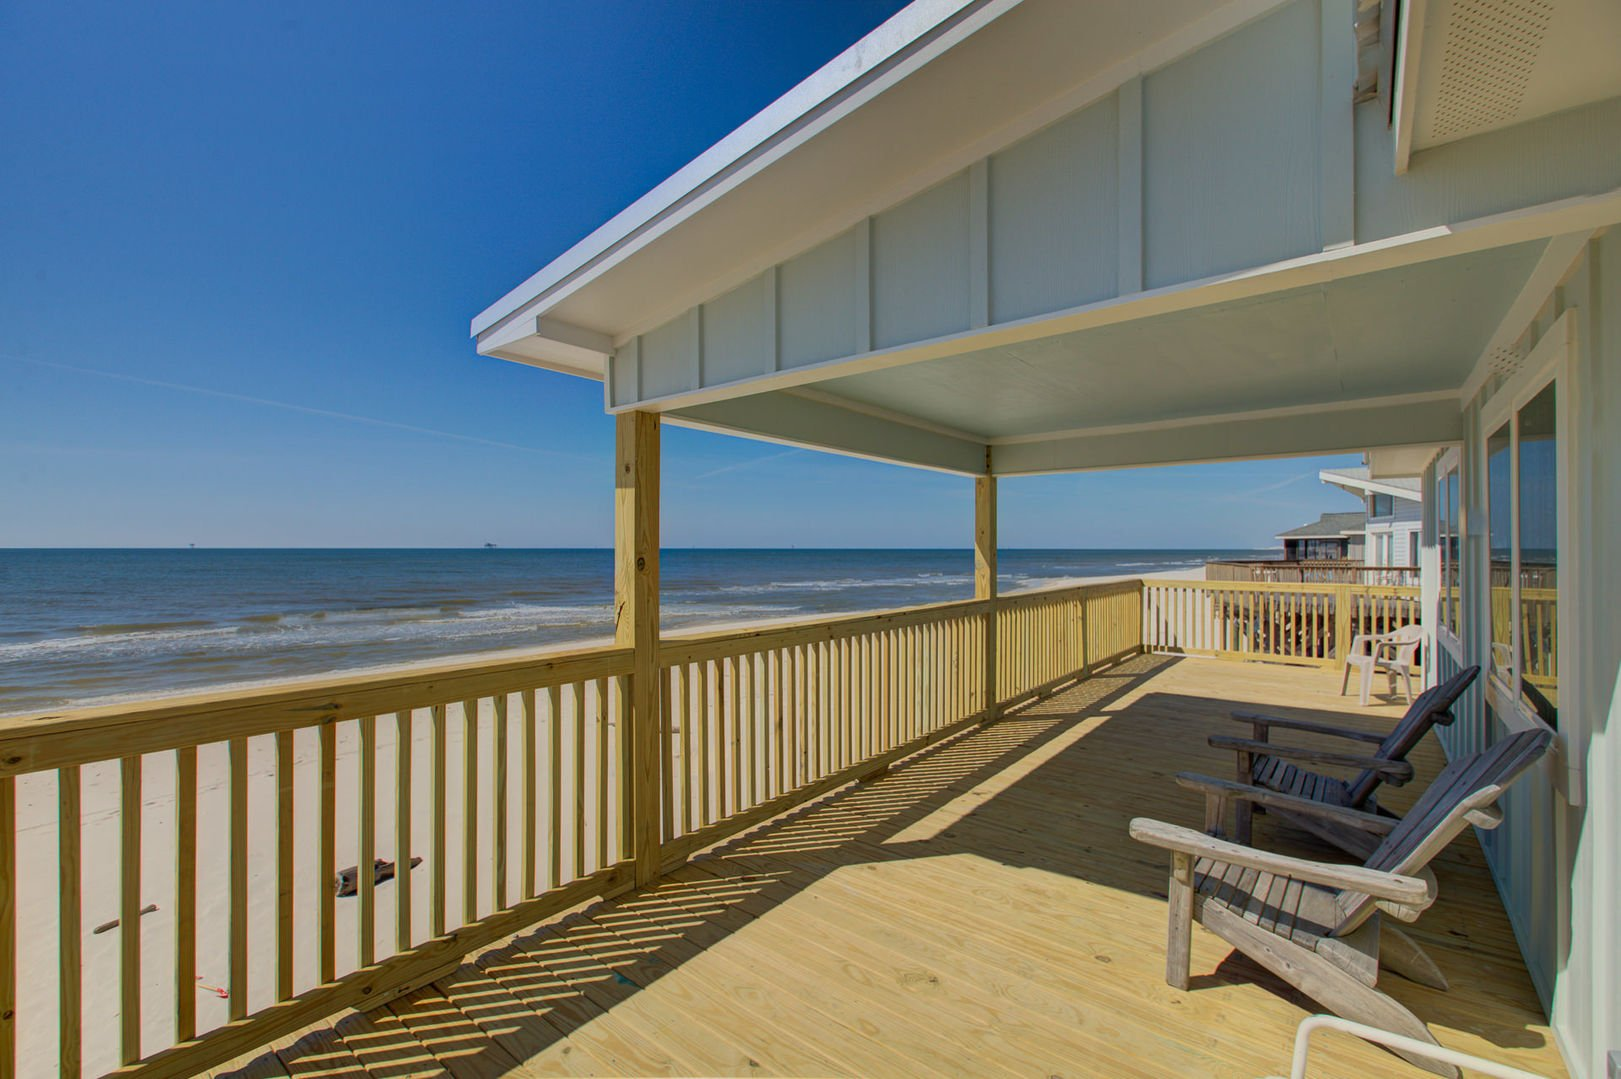 Plenty of room to relax on the porch of this Beach House Rental in Gulf Shores!